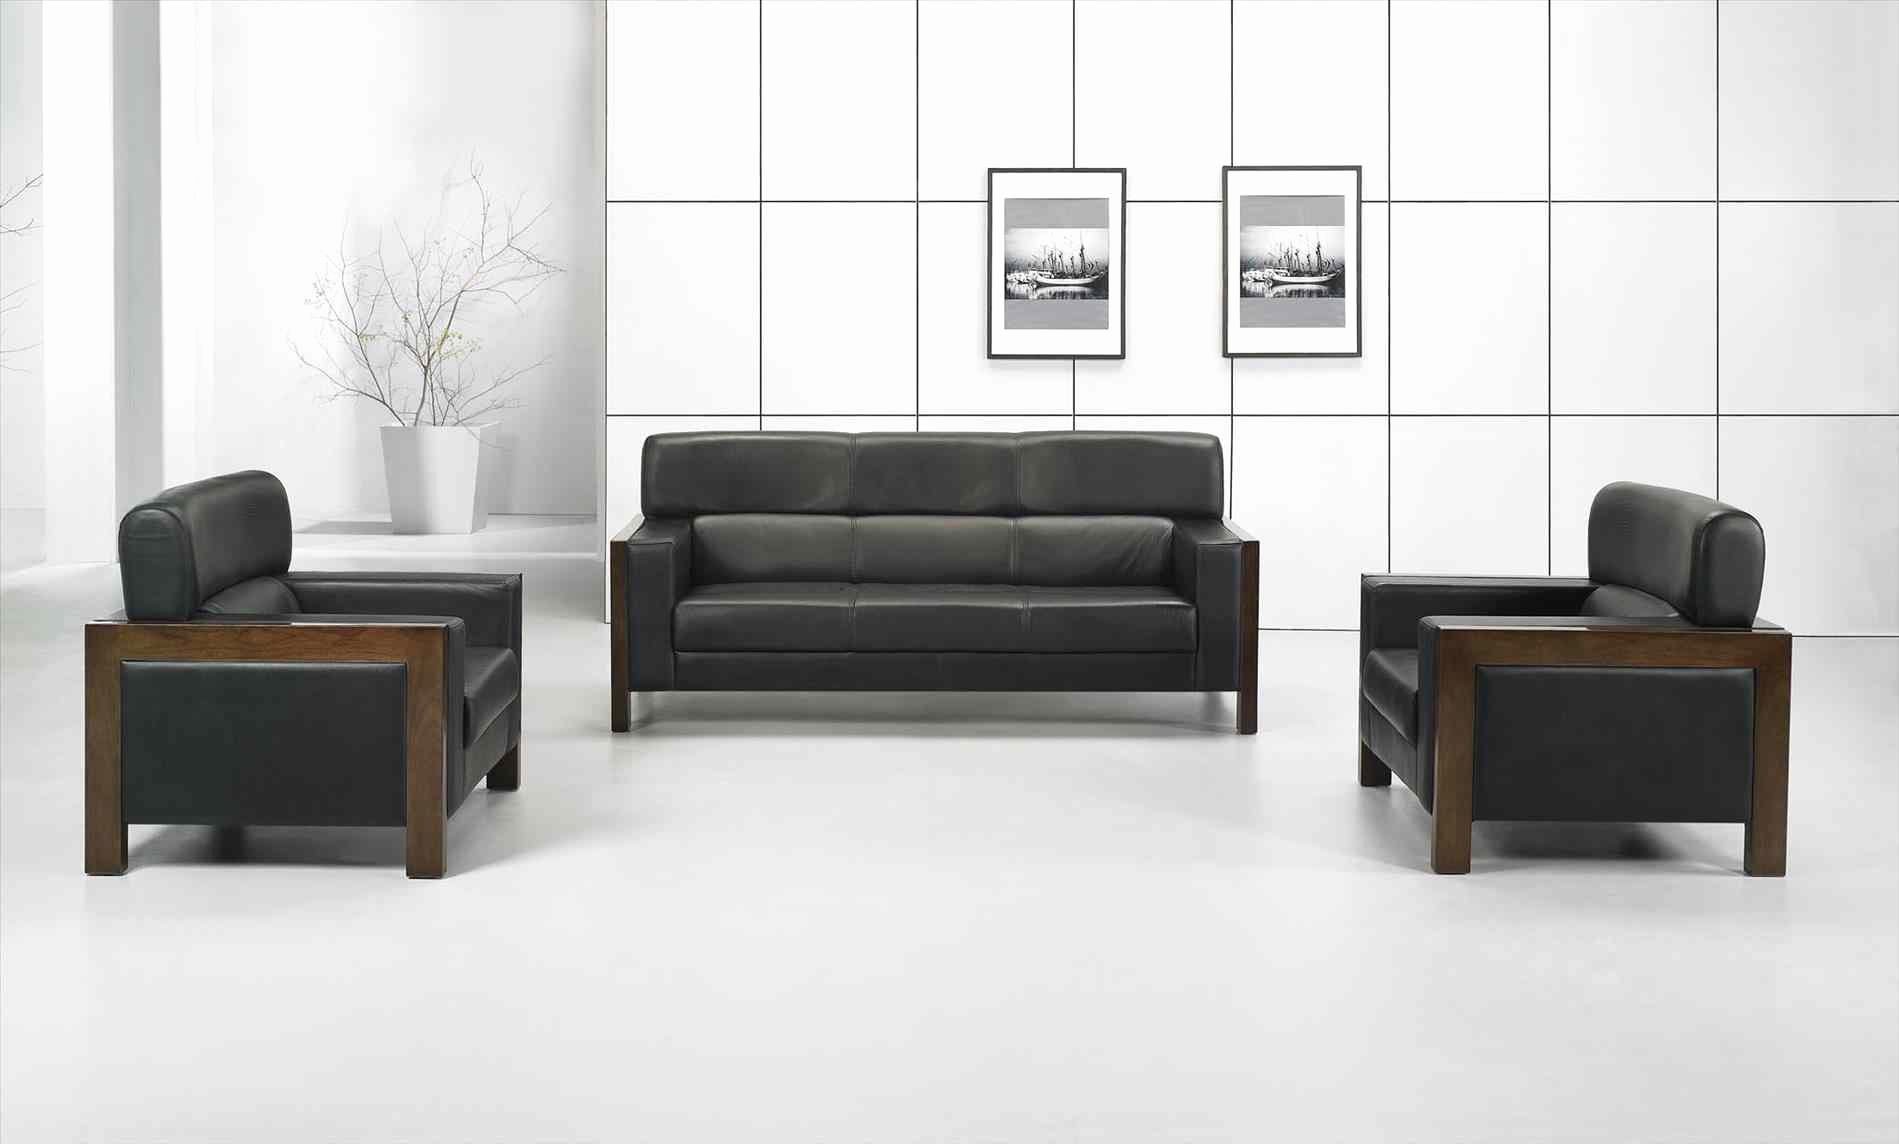 Ideas Modern Office sofa Graphics Modern Office sofa